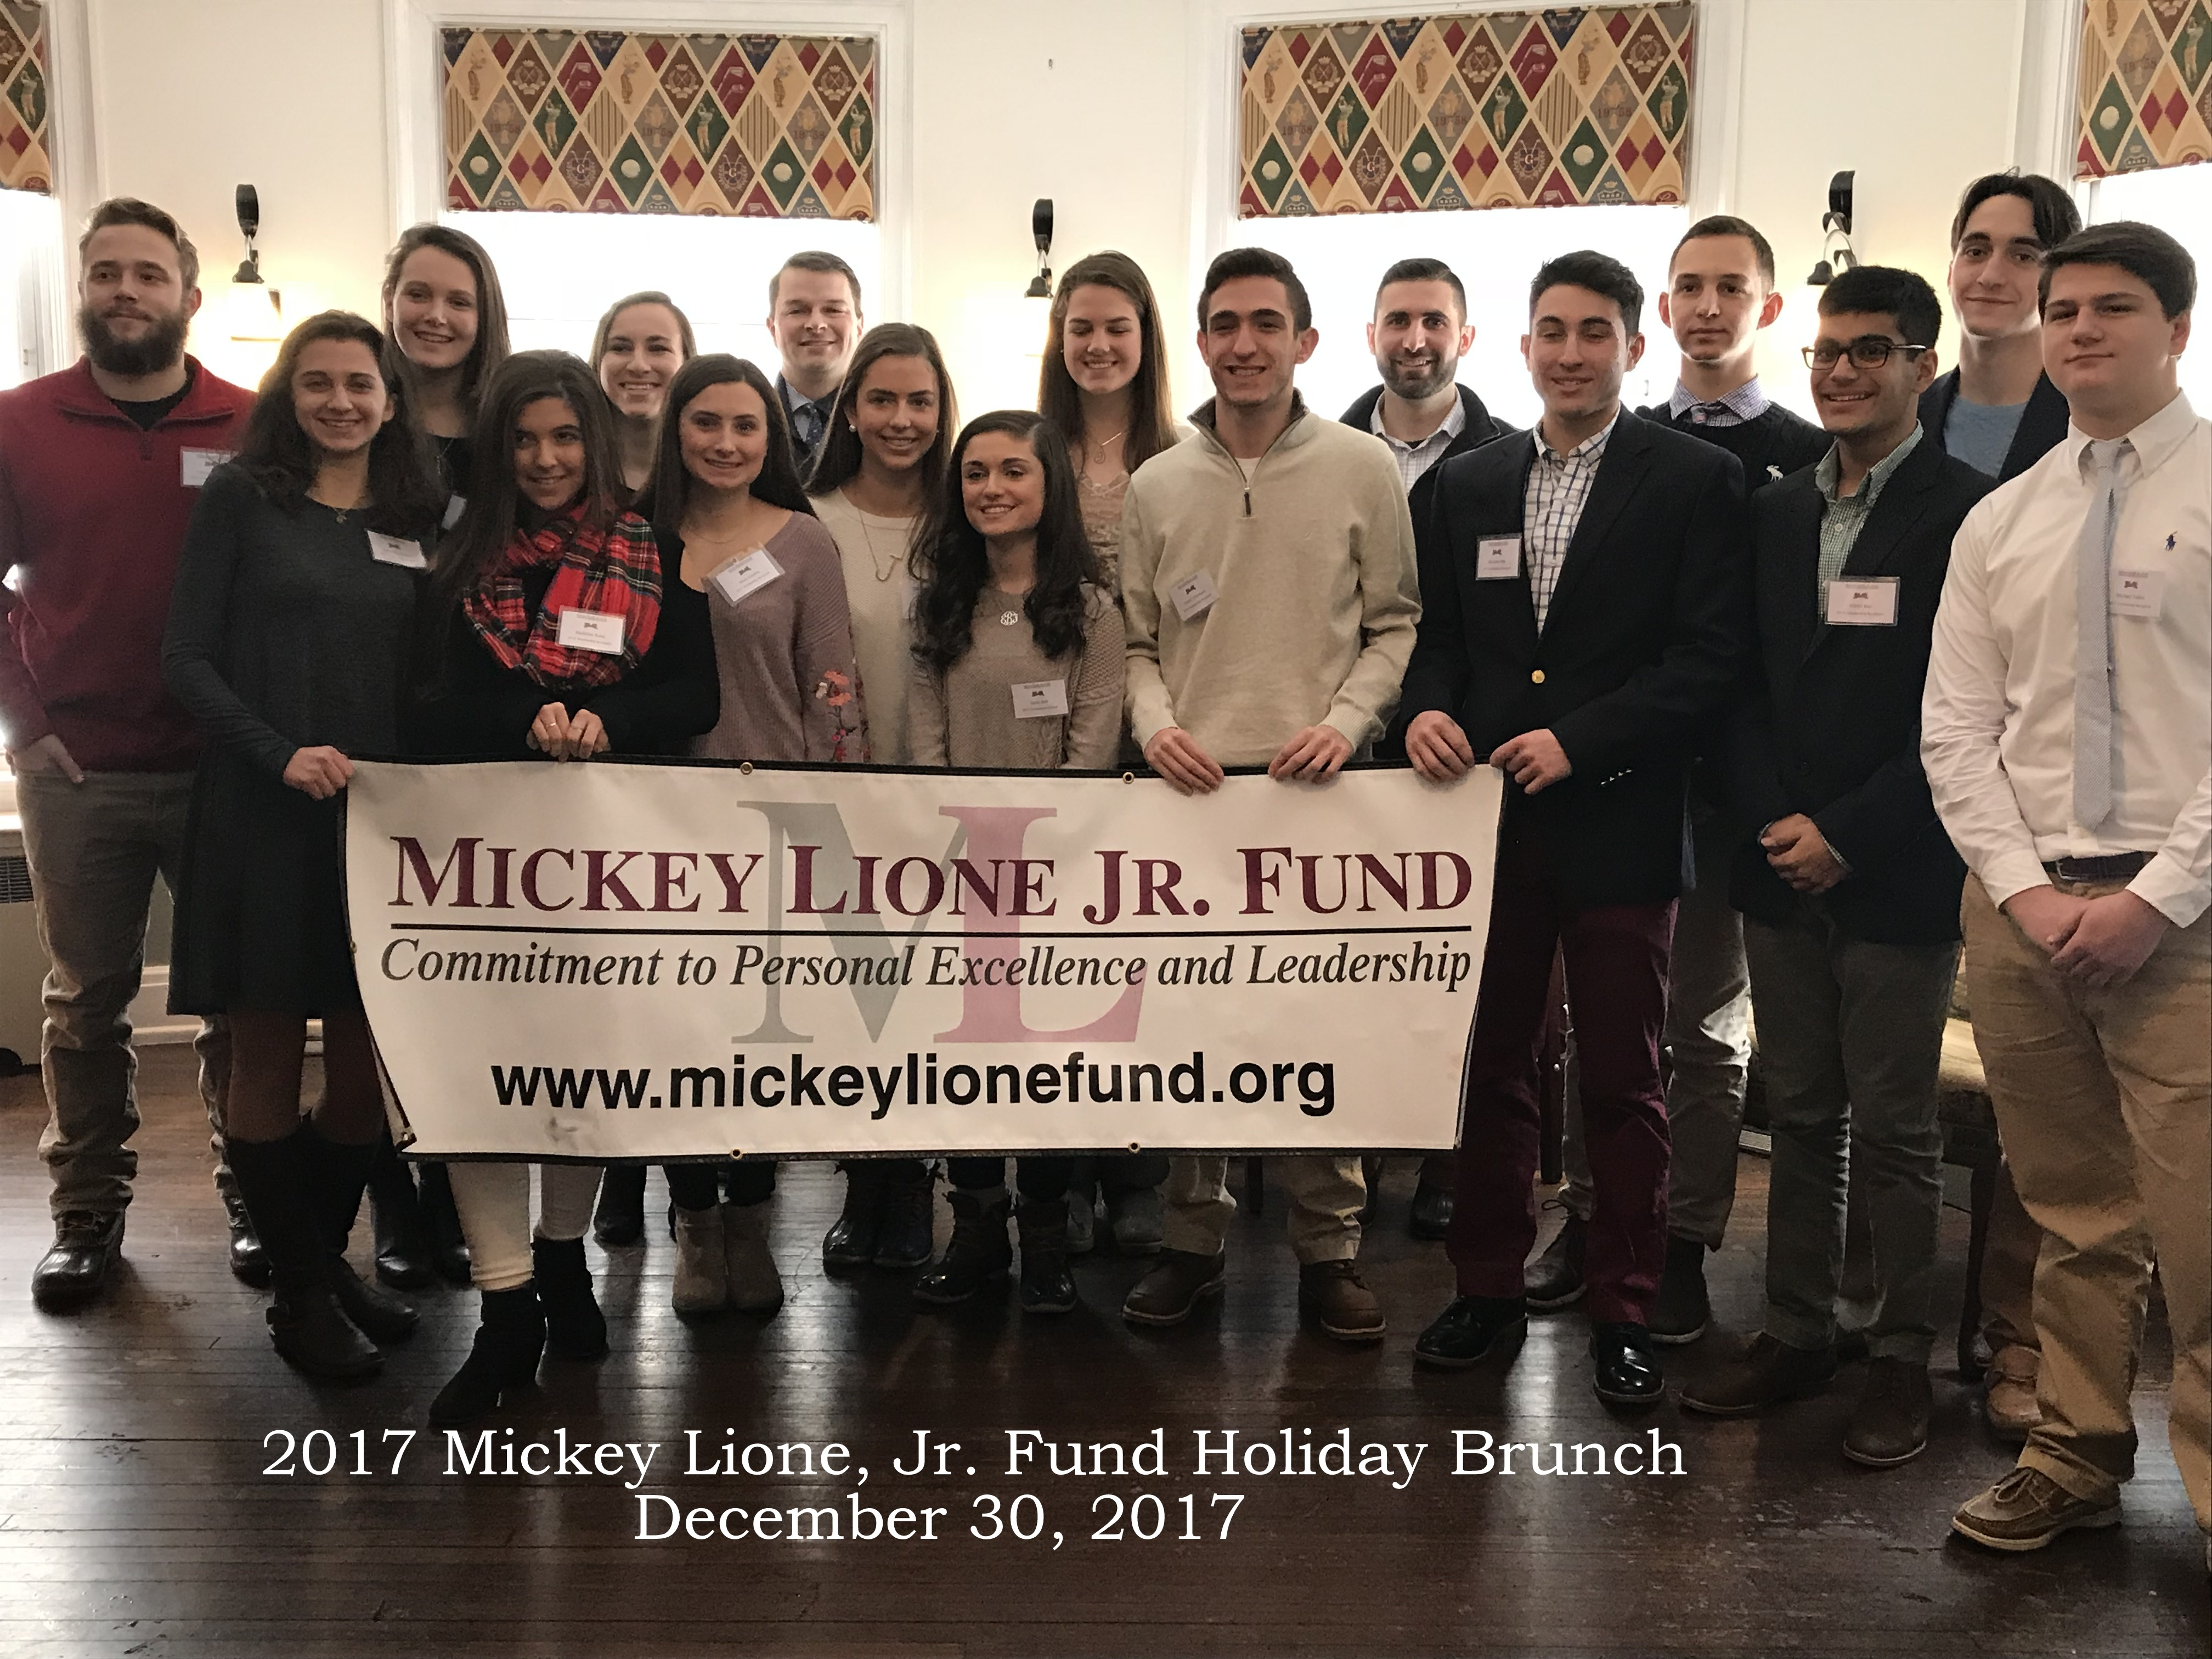 2017 MLJF Holiday Brunch Photo 12.30.17